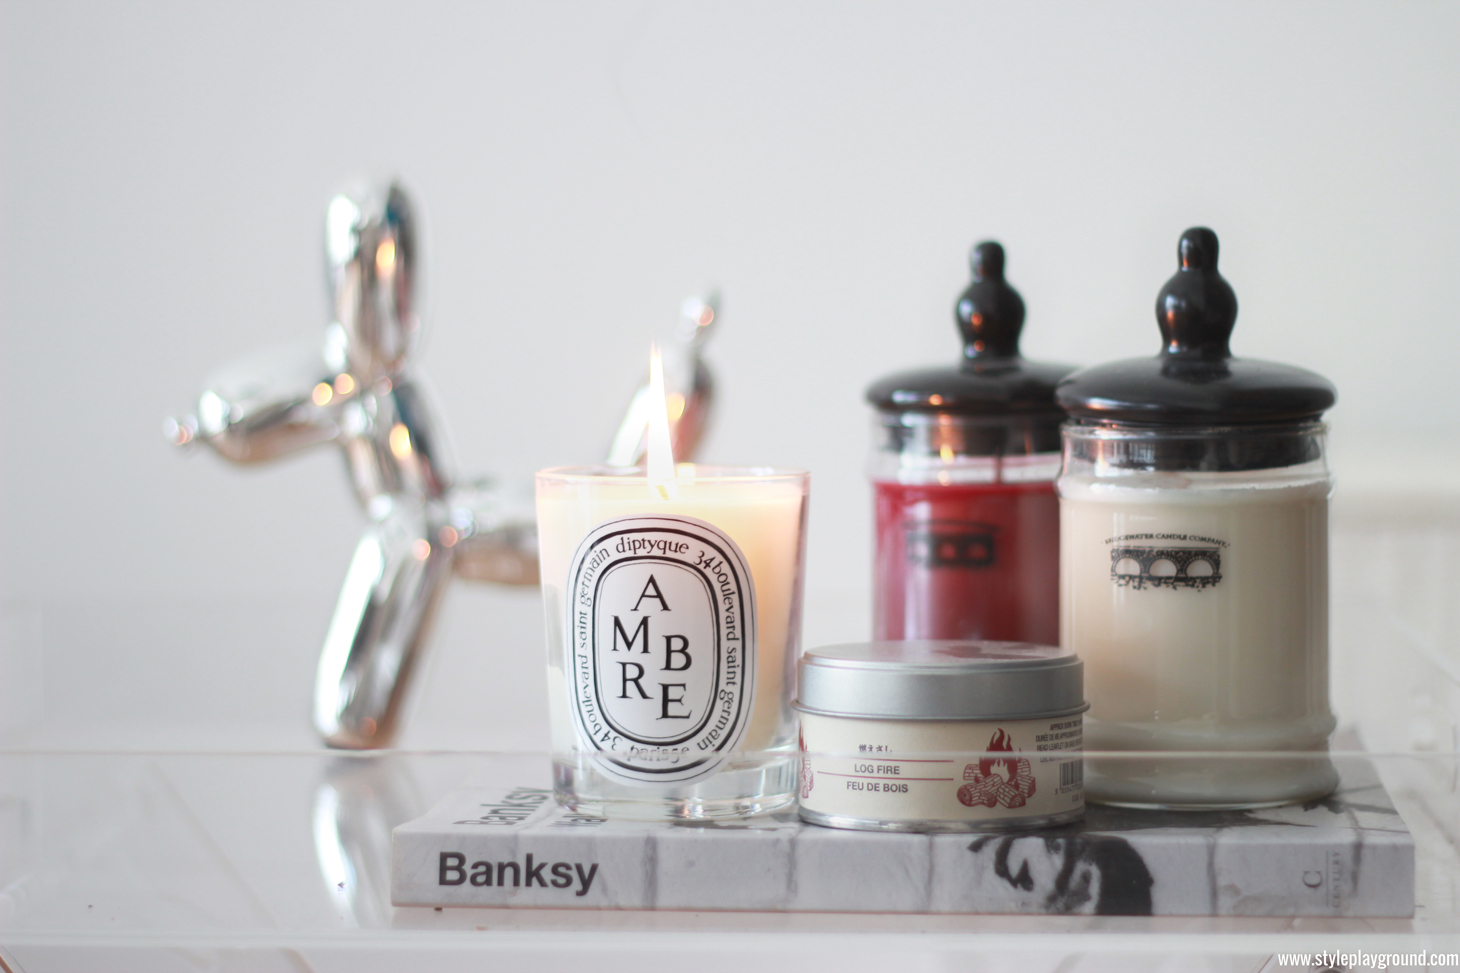 Candles basics  /// Tips & trick to choose the right candle and make the most of it!